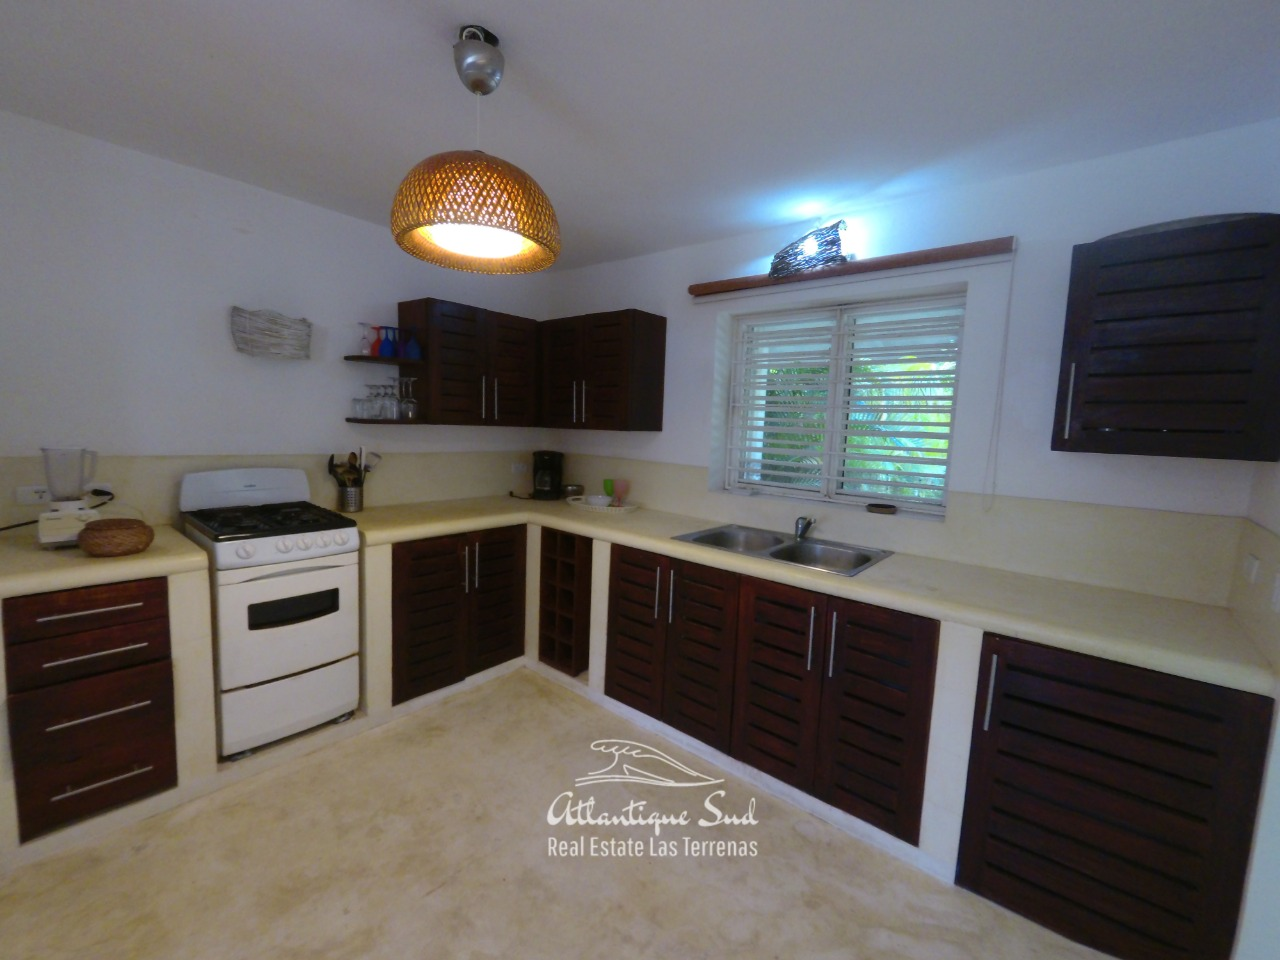 Villa for sale steps from the beach in las terrenas 14.jpeg